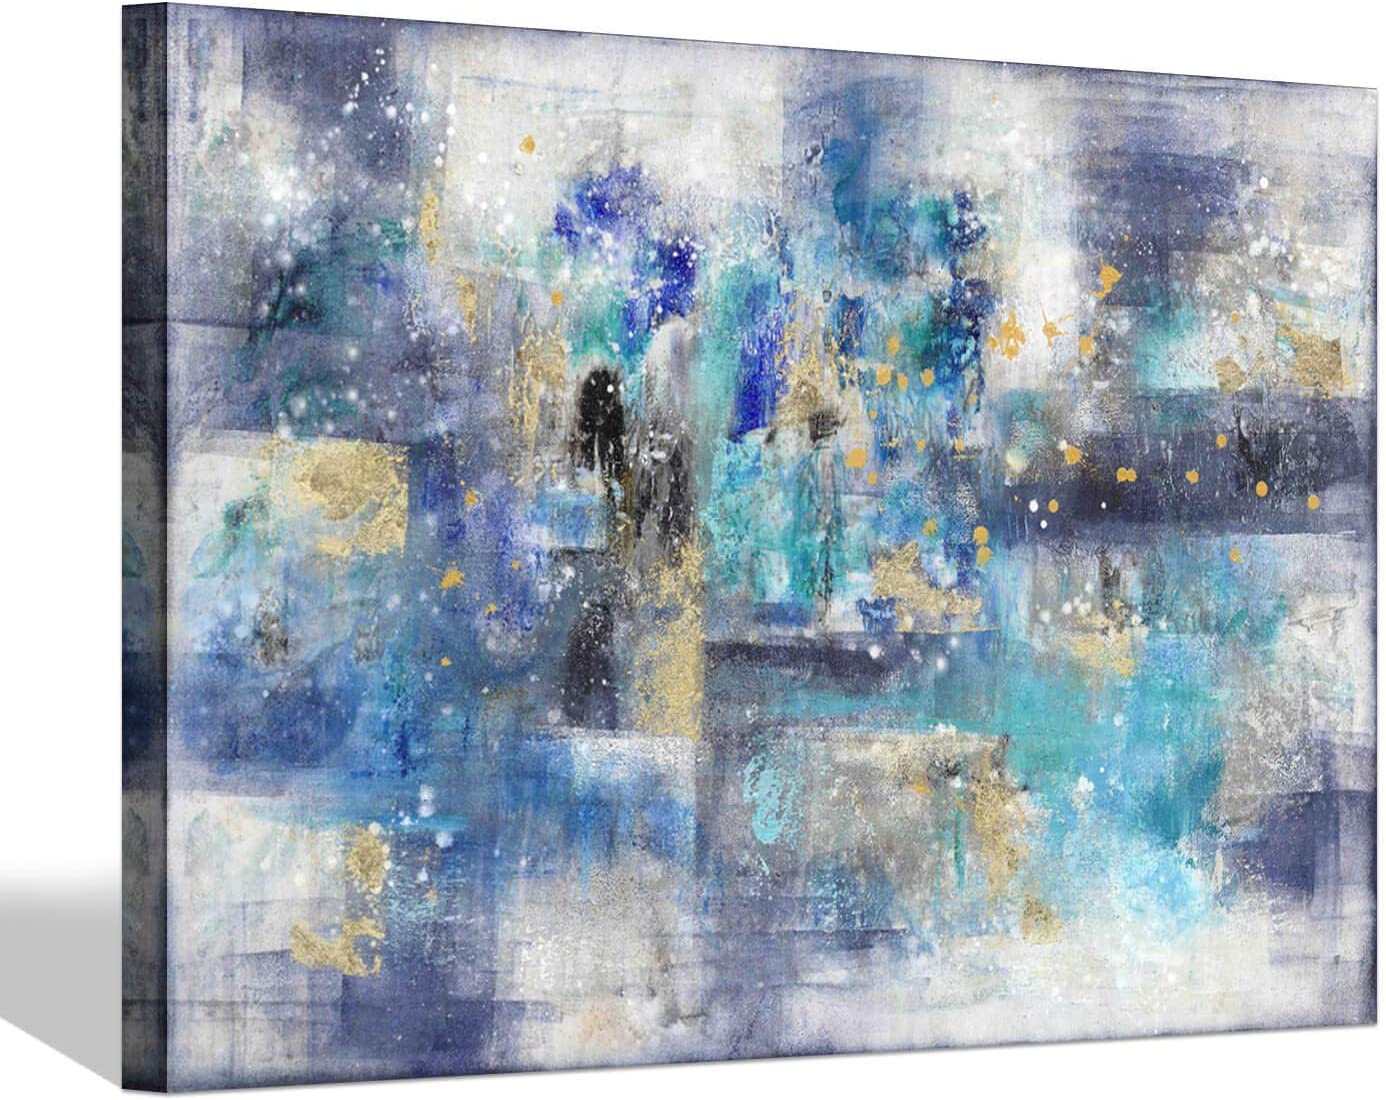 Blue Abstract Canvas Wall Art: Gray & Blue Hand Painted Artwork with Gold Foil Painting for Bedroom (45 x 30 x 1 Panel)